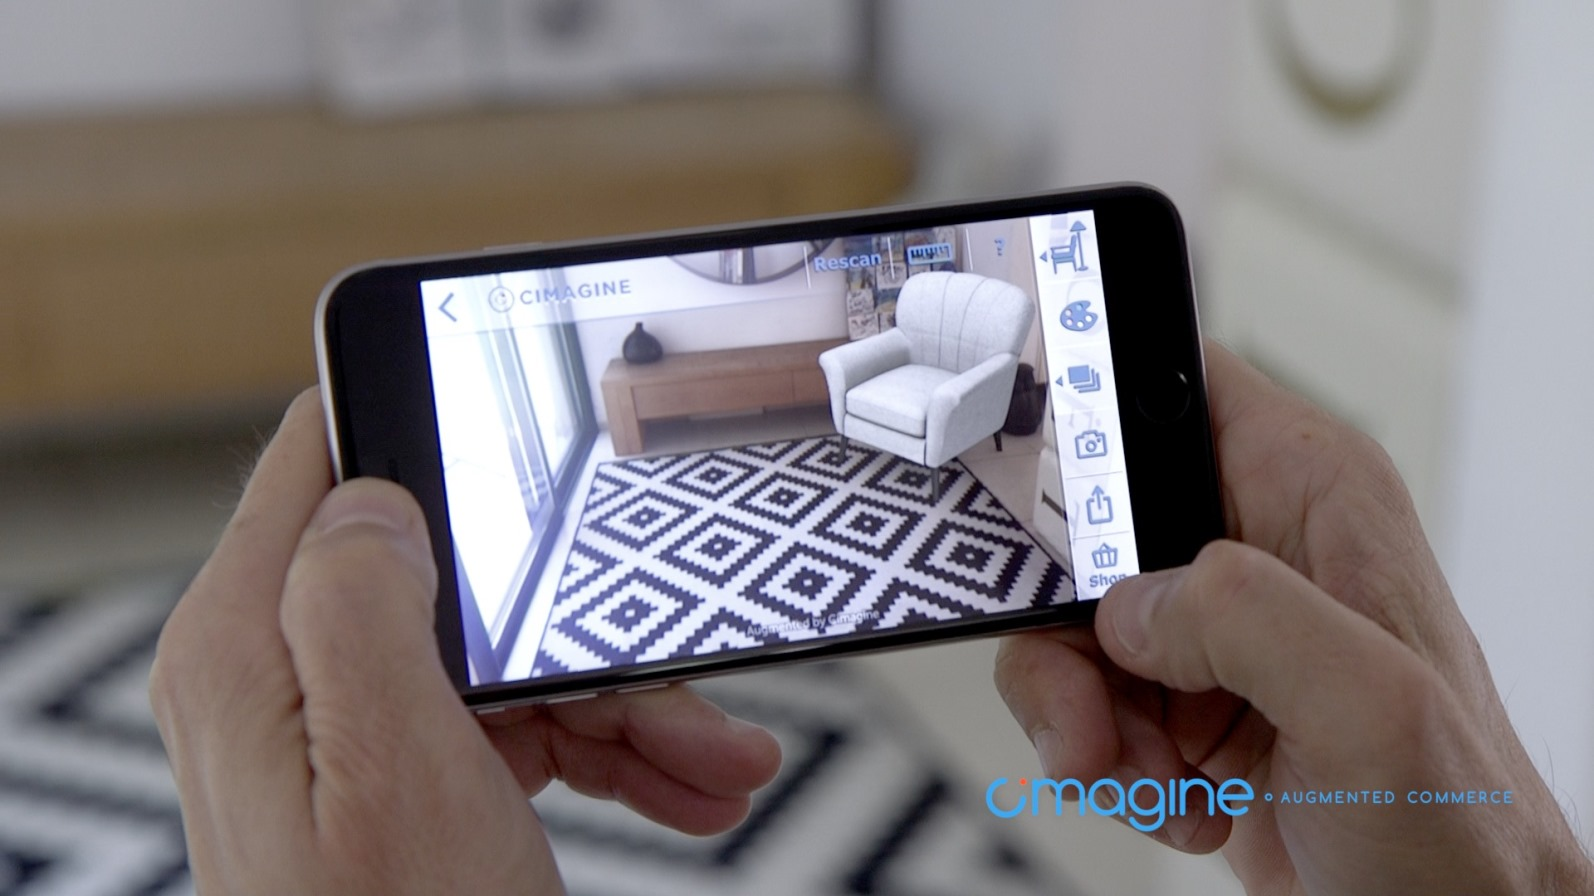 Cimagine's AR commerce platform lets people see how objects will look in their surroundings. Photo: courtesy